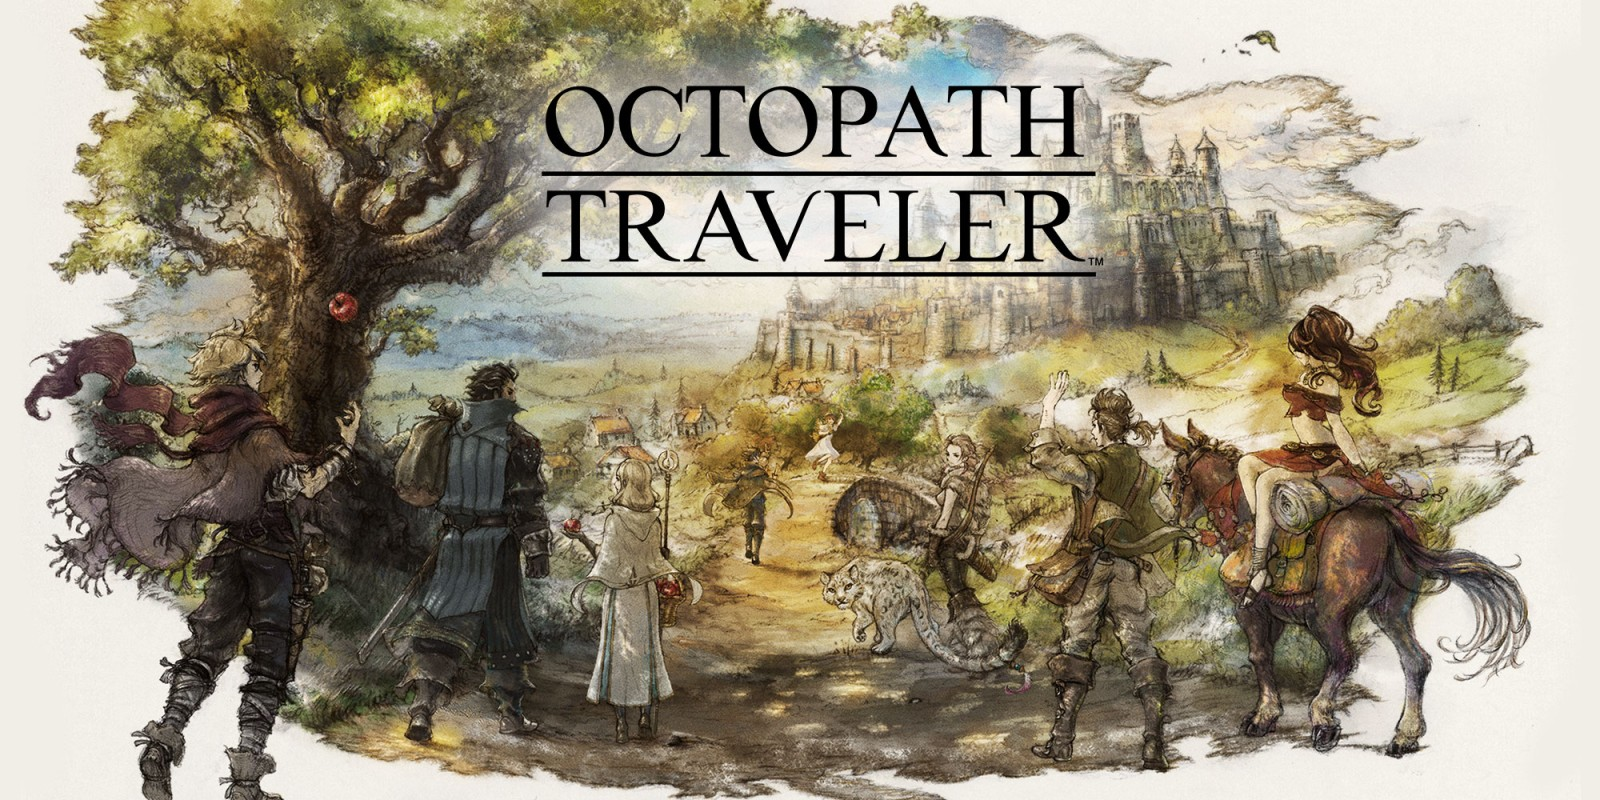 Nieuws - Octopath Traveler E3 trailer